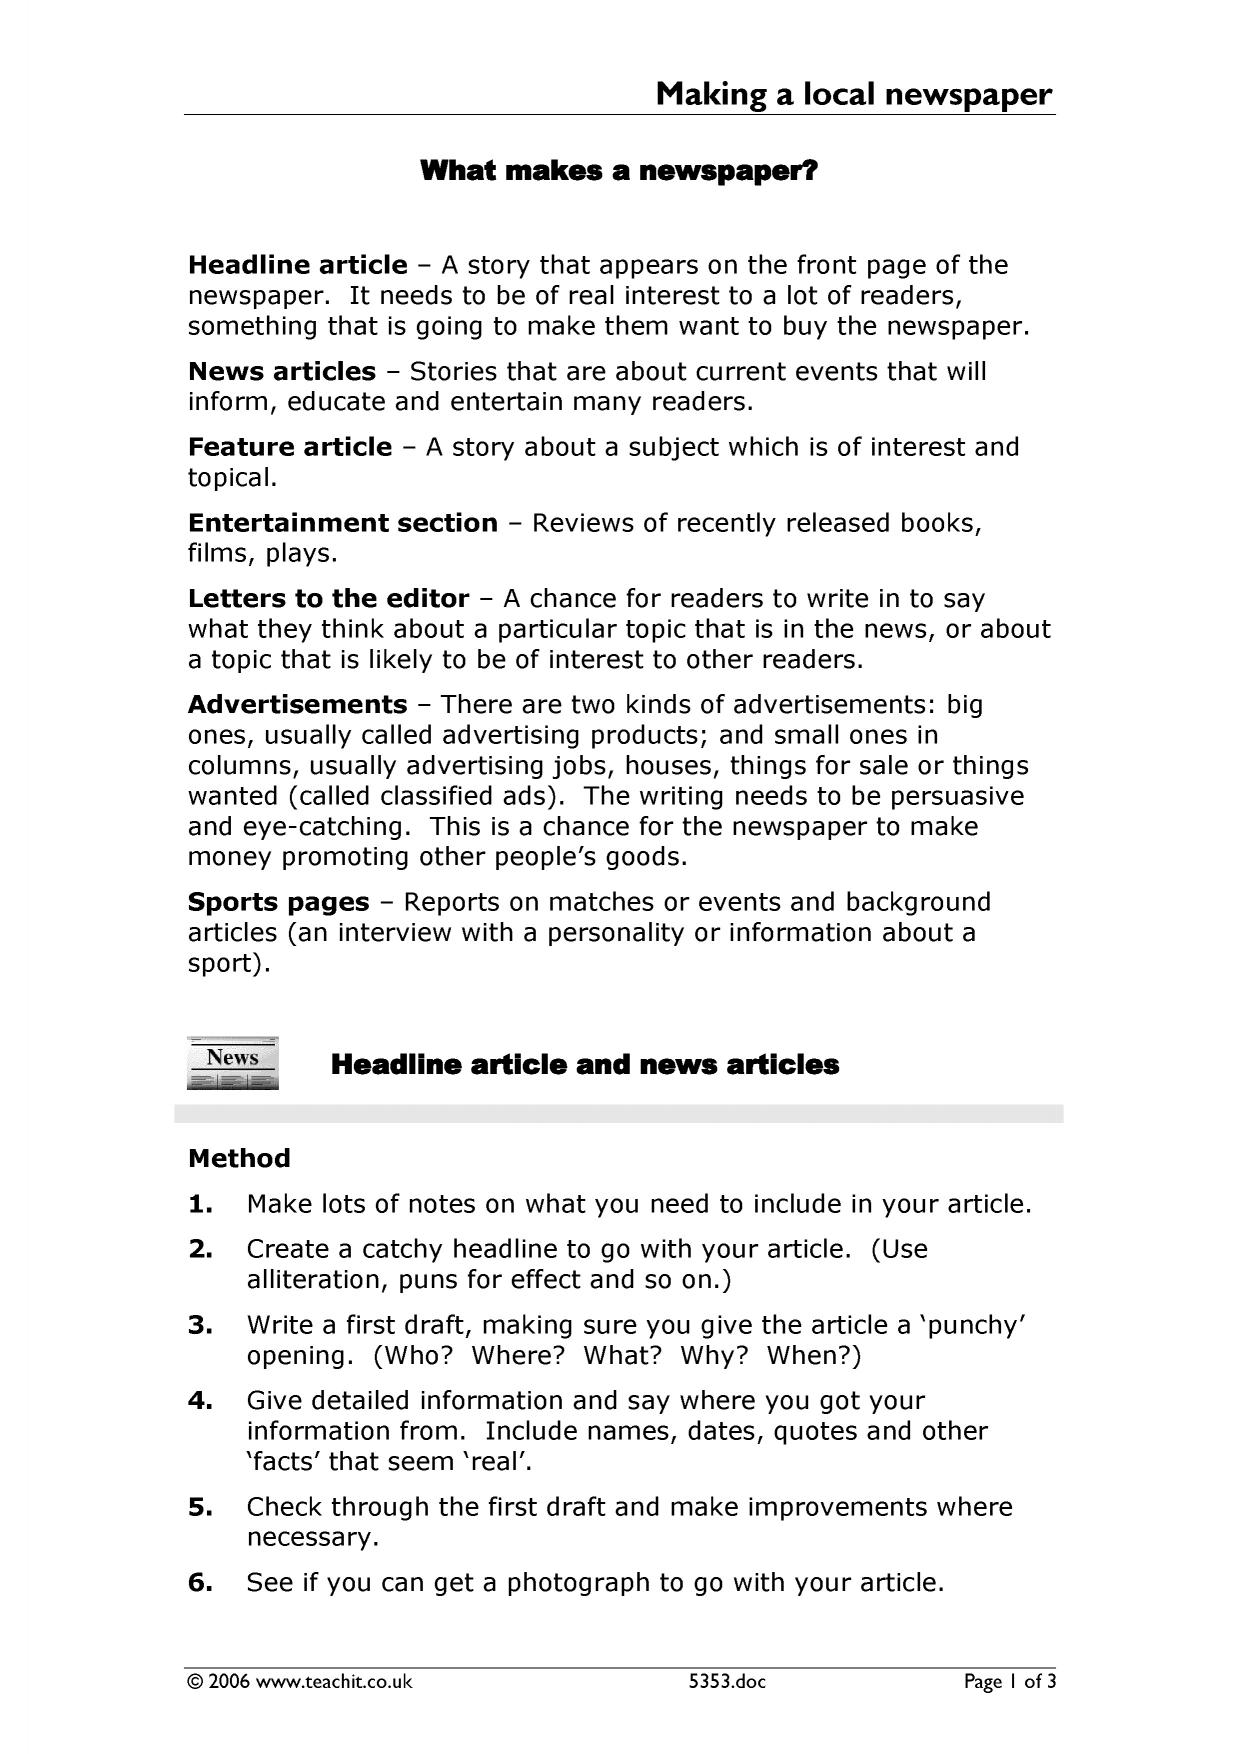 how to write a newspaper article lesson plan